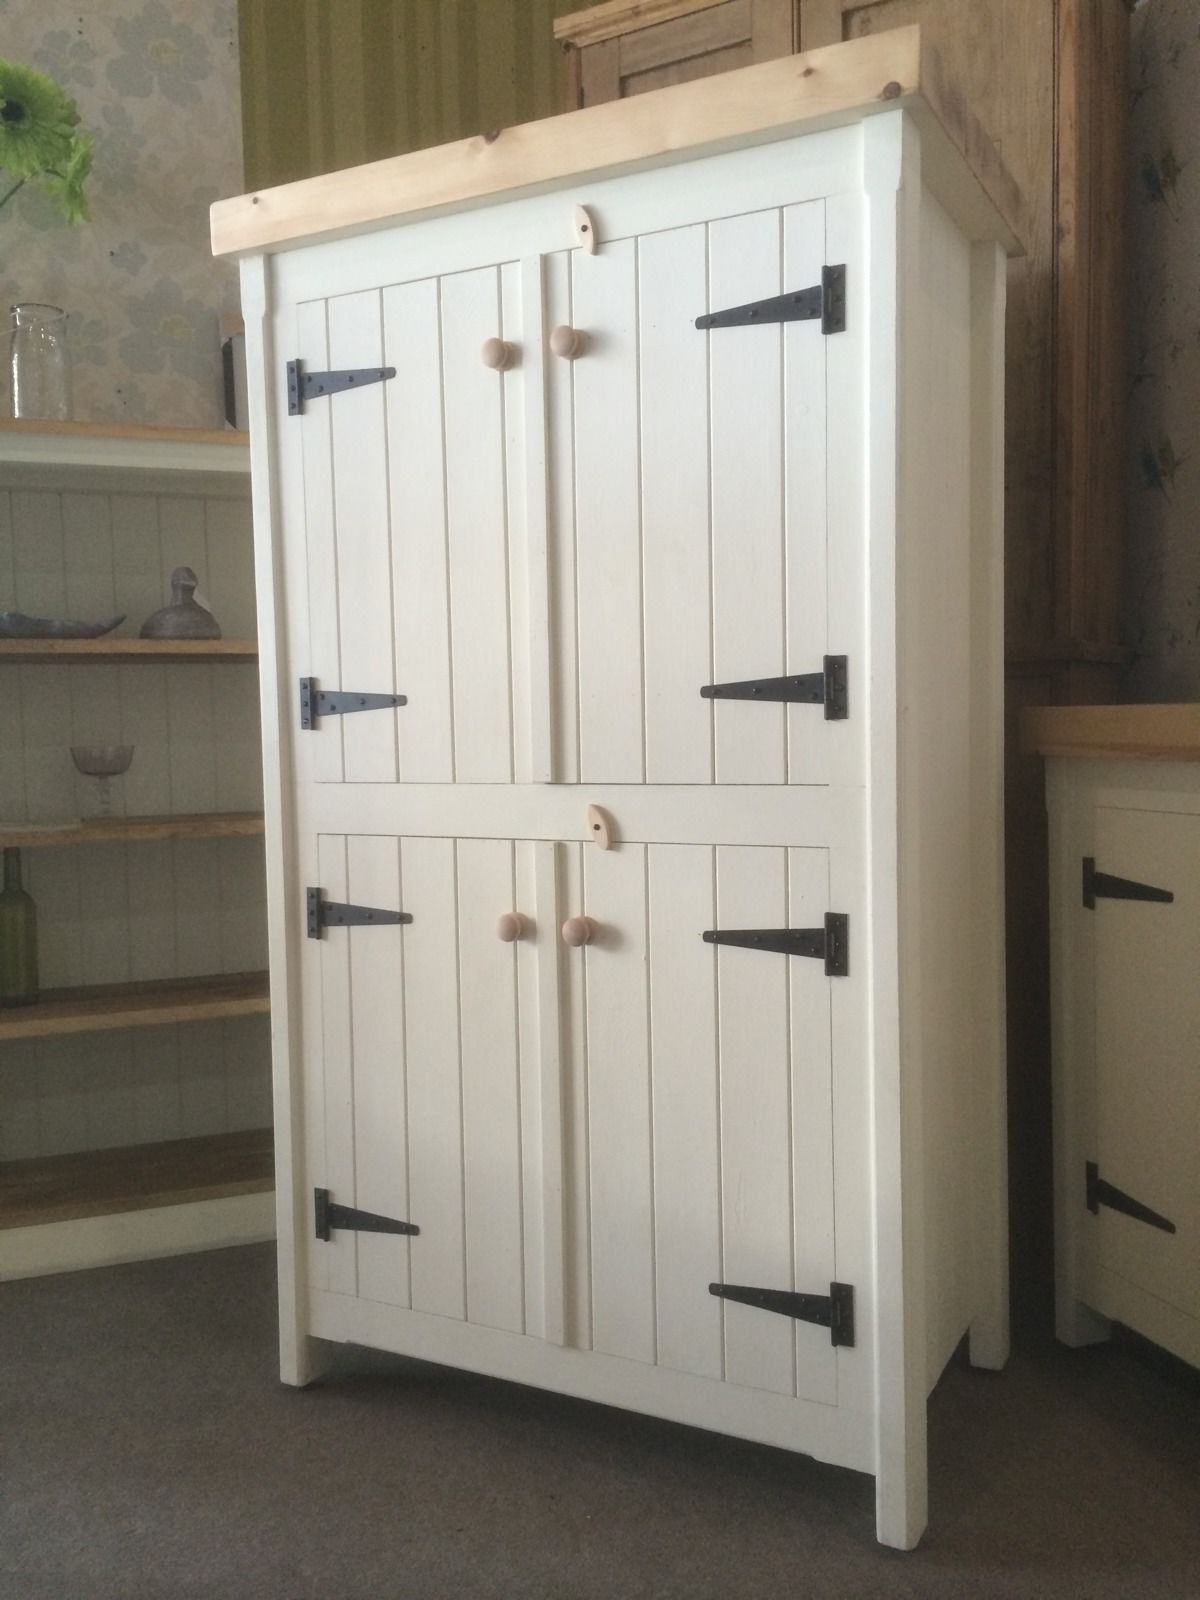 Newest Free Cupboards Intended For Rustic Wooden Pine Freestanding Kitchen Handmade Cupboard Unit (View 9 of 15)